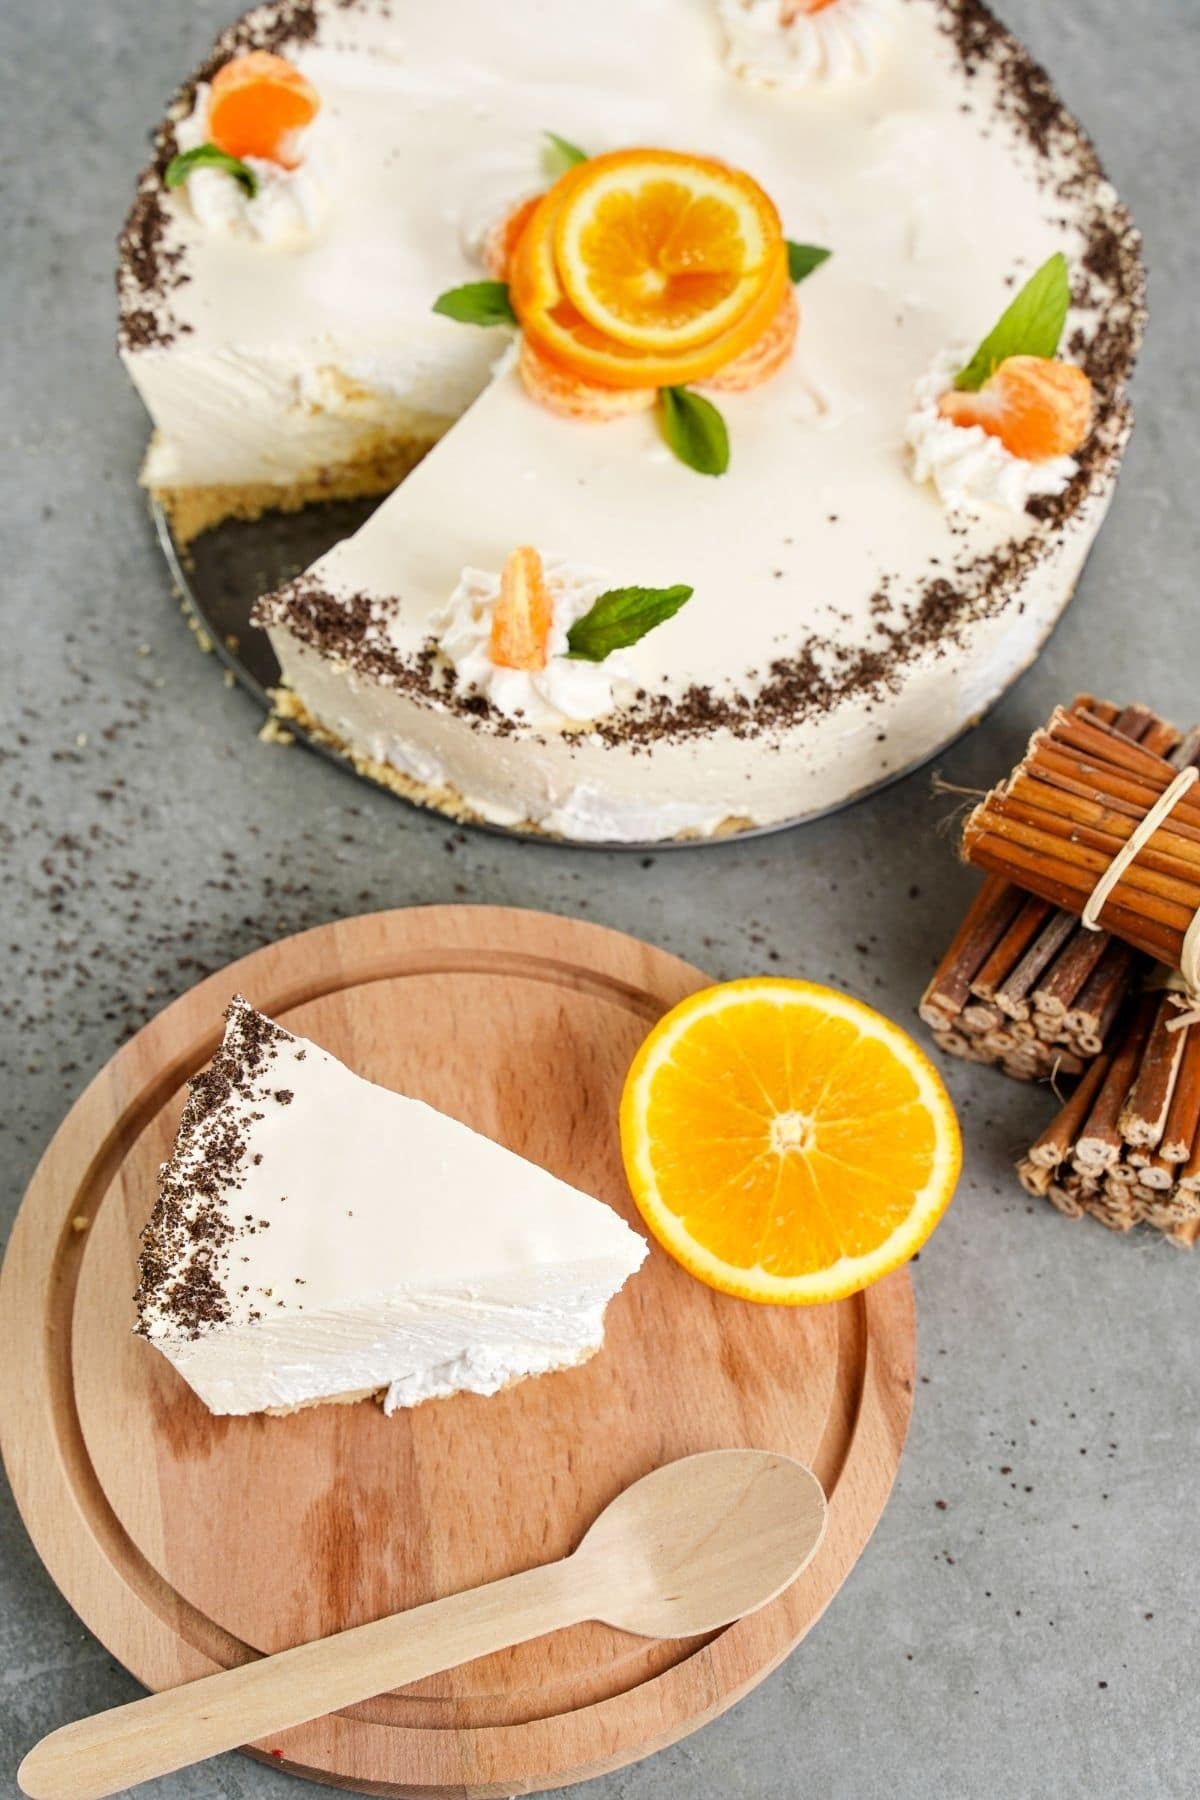 Slice of cheesecake on wooden board next to sliced orange and cinnamon sticks